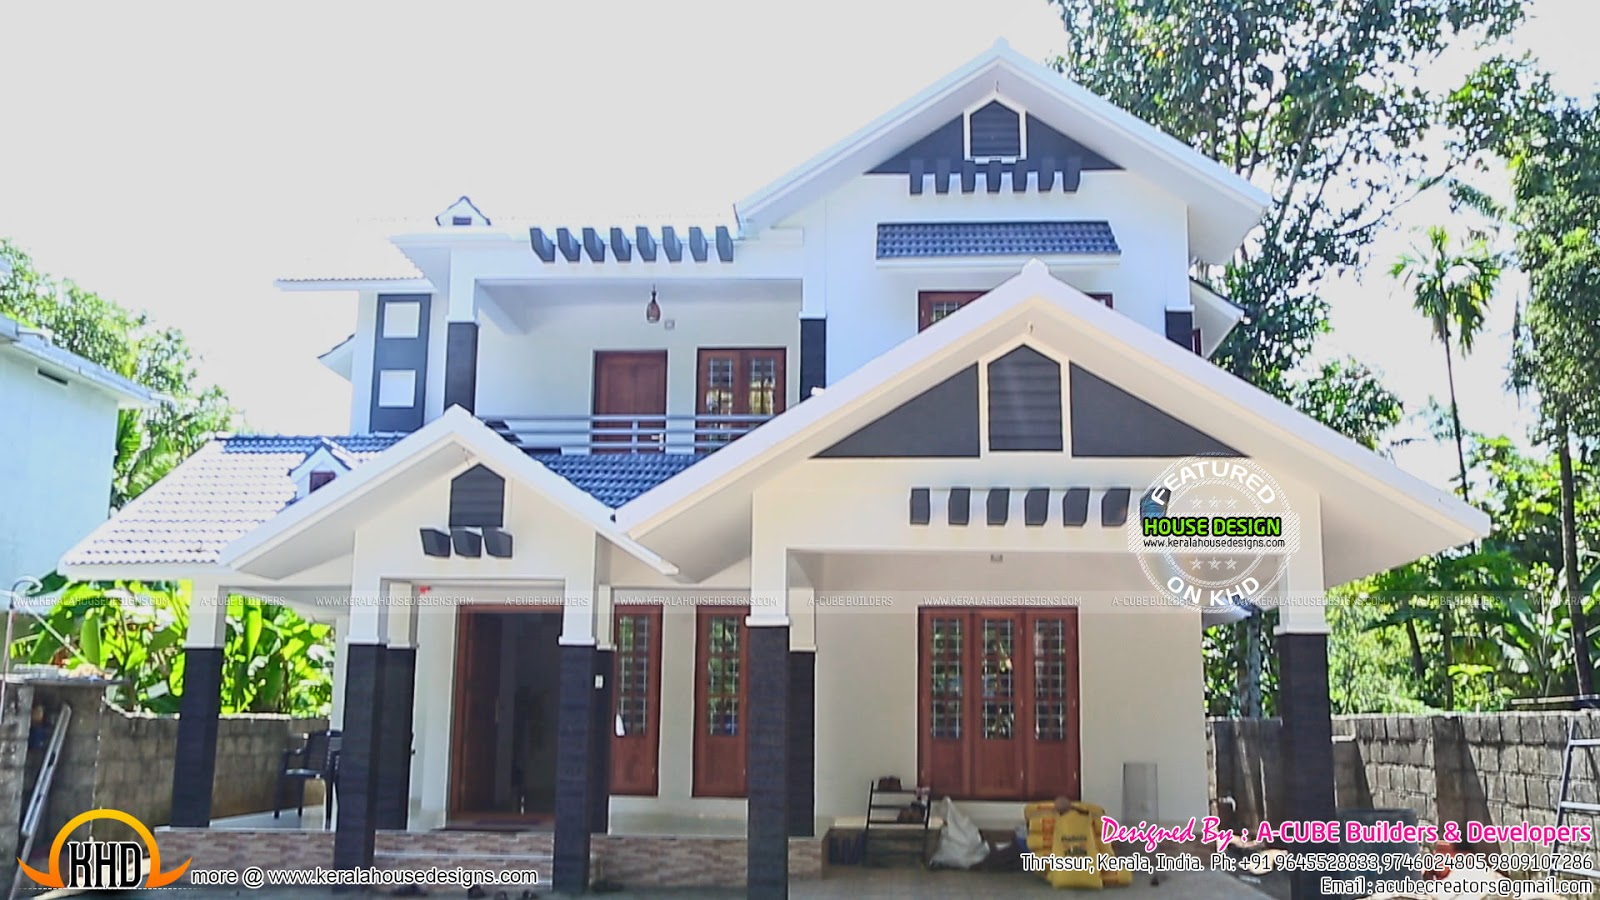 New House Plans for 2016 starts here - Kerala home design